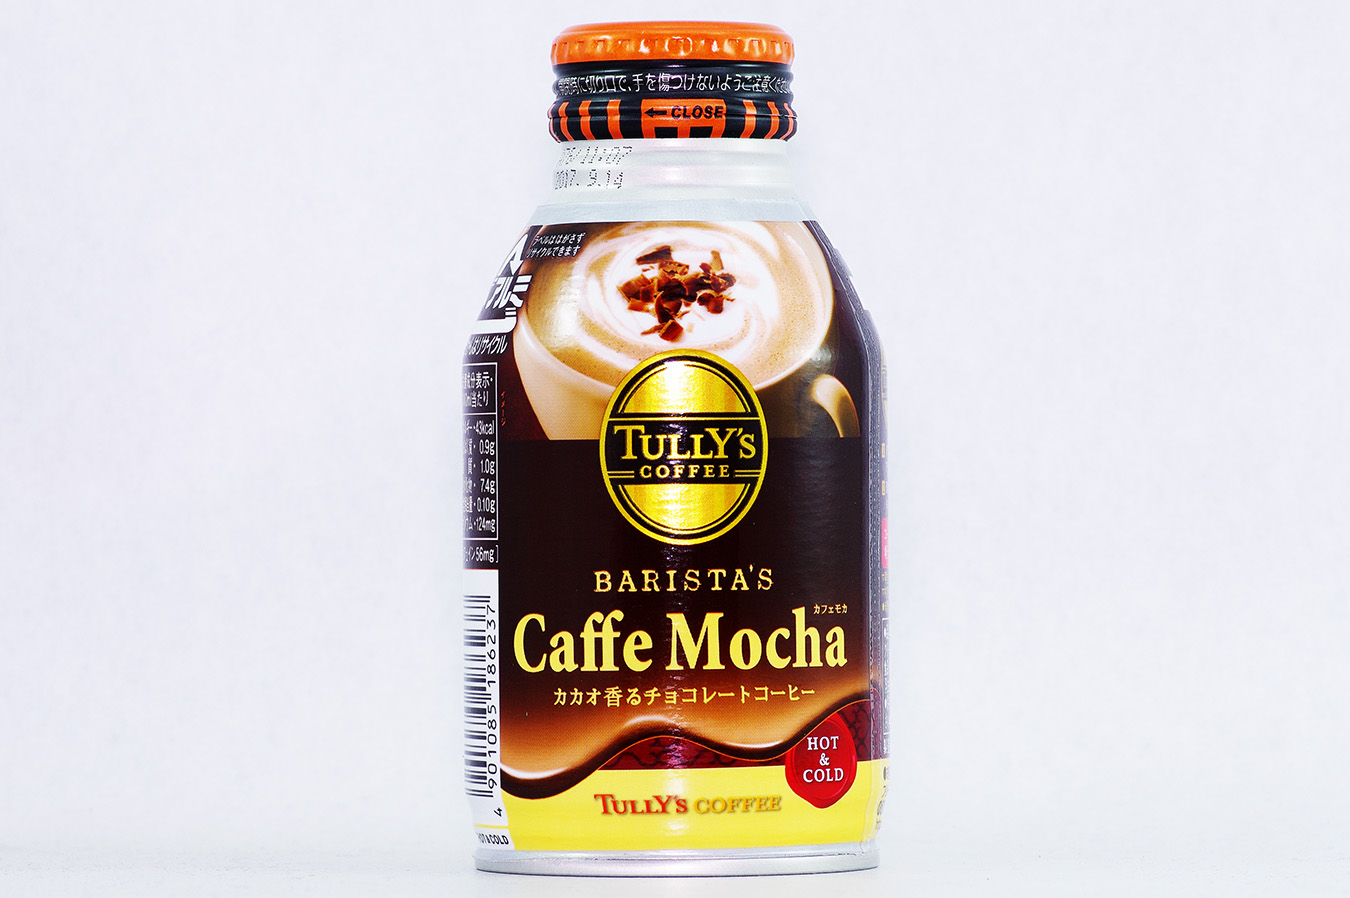 TULLY'S COFFEE BARISTA'S  カフェモカ 2016年10月